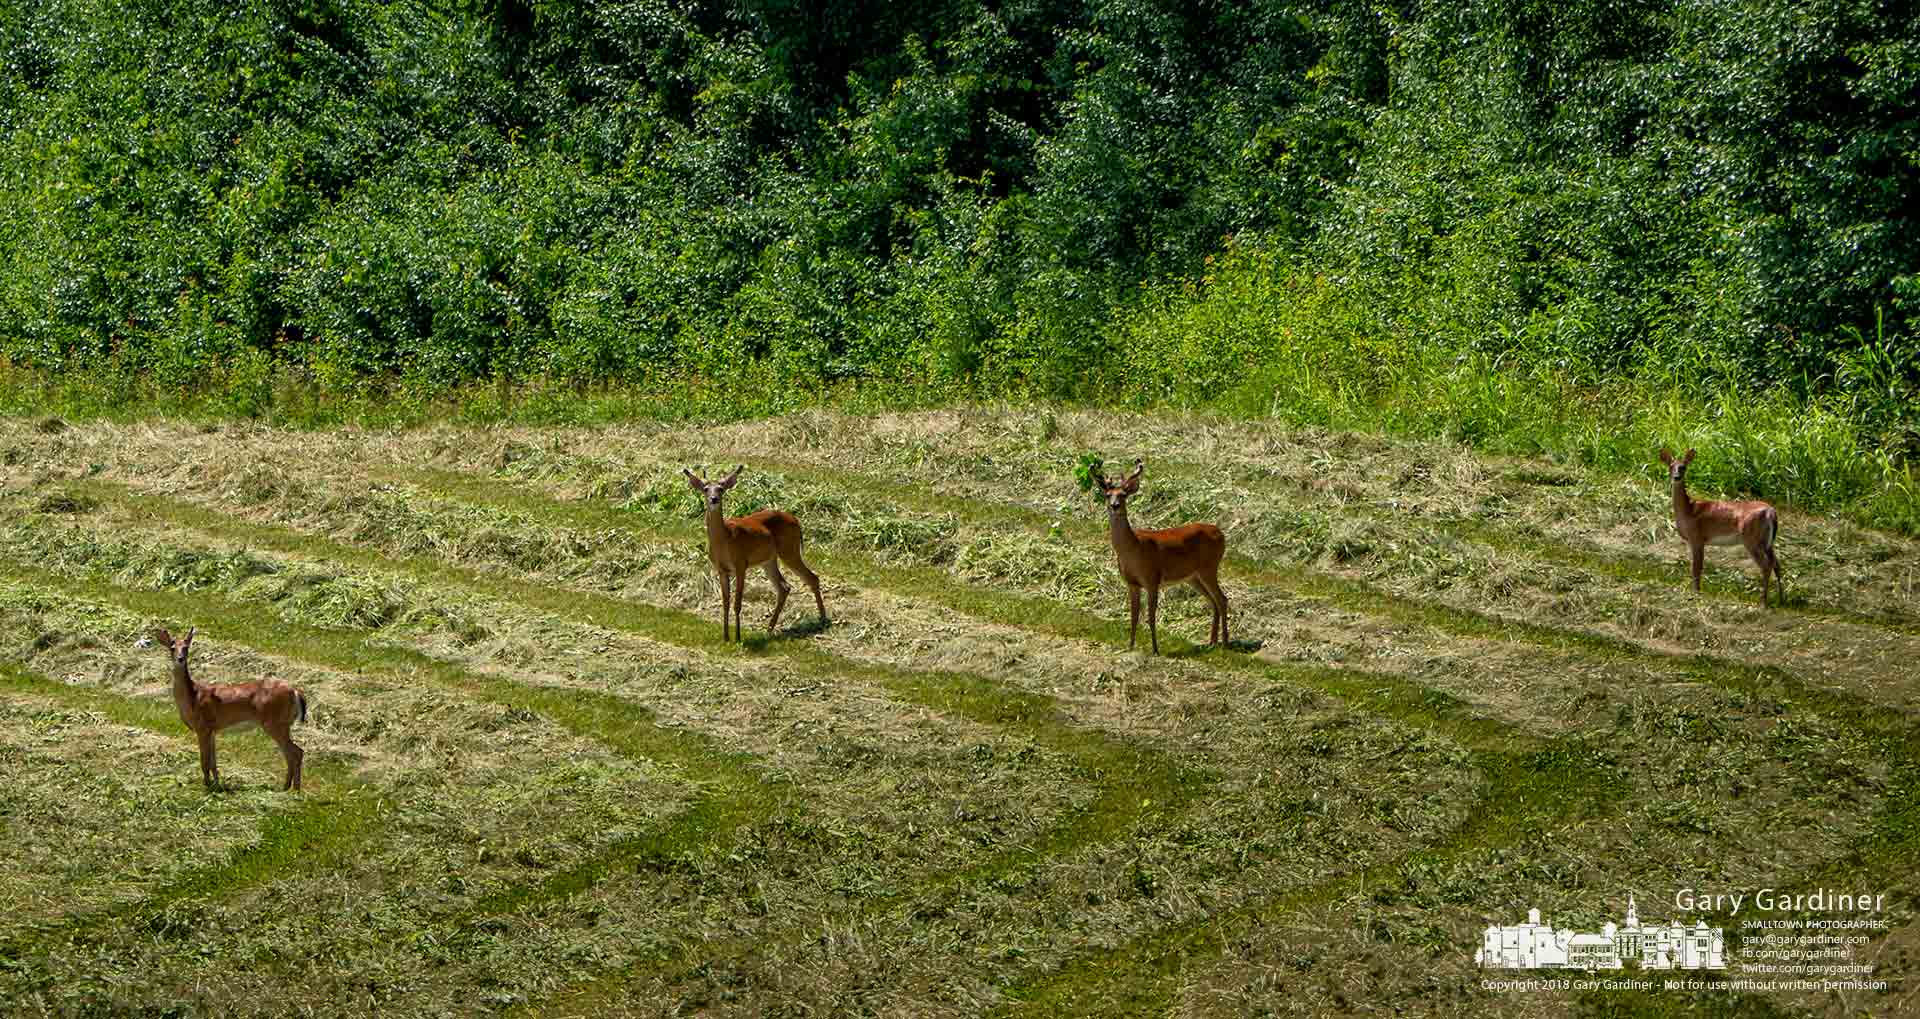 Four deer stand on the edge of a field of fresh cut hay watching tractor and farmer before continuing their way across the Braun Farm property near Cleveland Ave. and Cooper Road. My Final Photo for June 28, 2018.